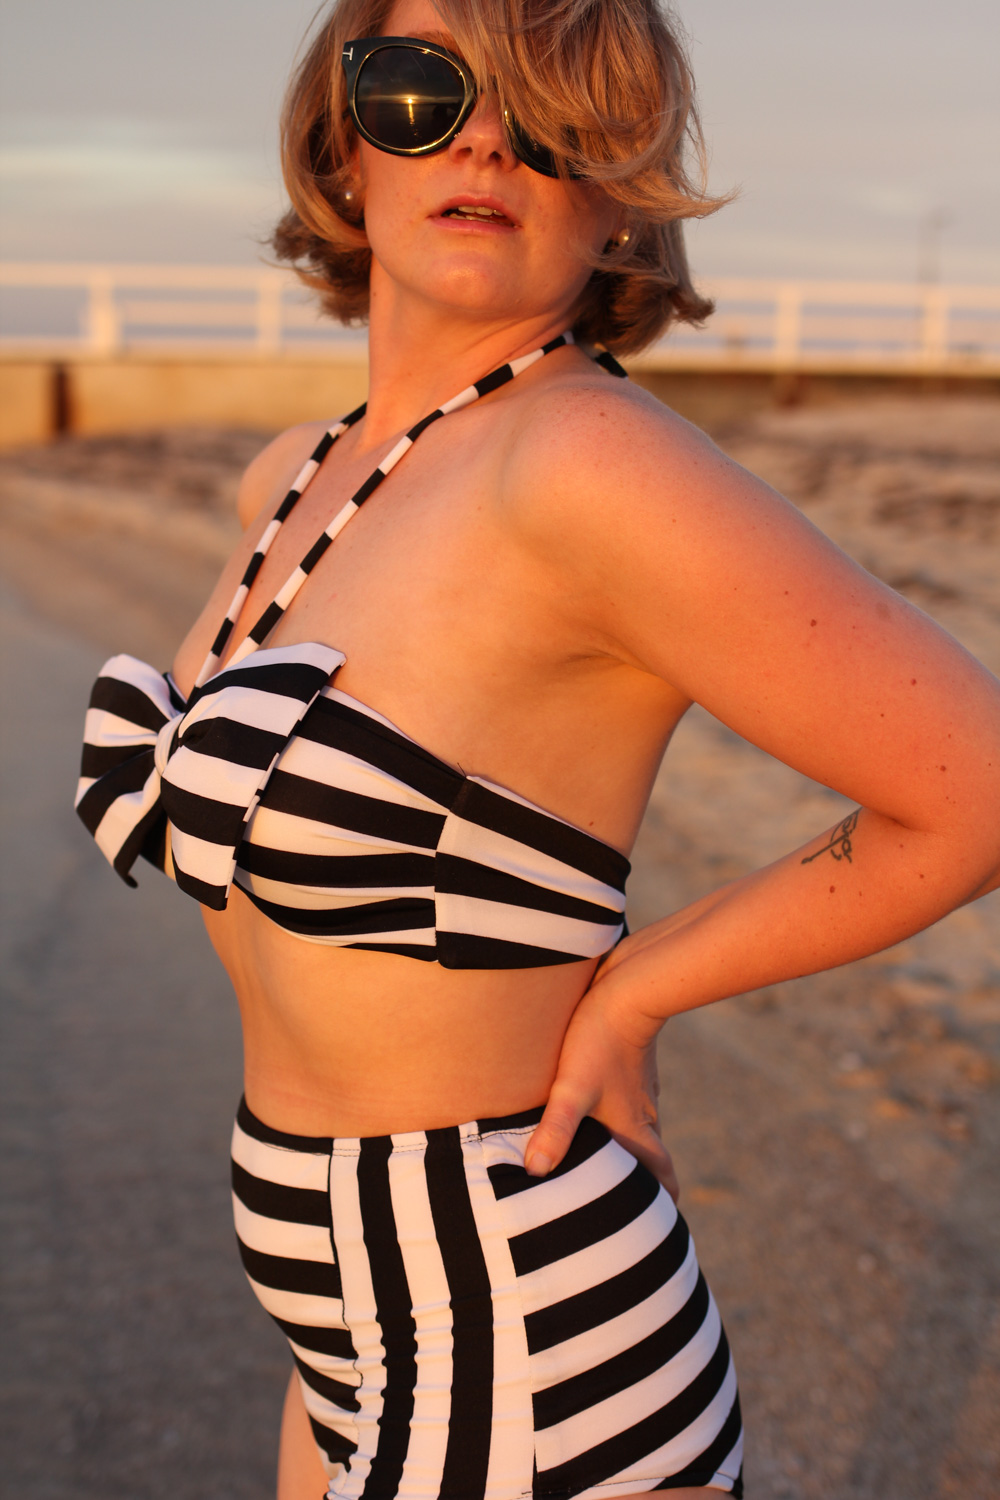 @findingfemme wears striped Bikiniboo high waisted bikini at the beach.